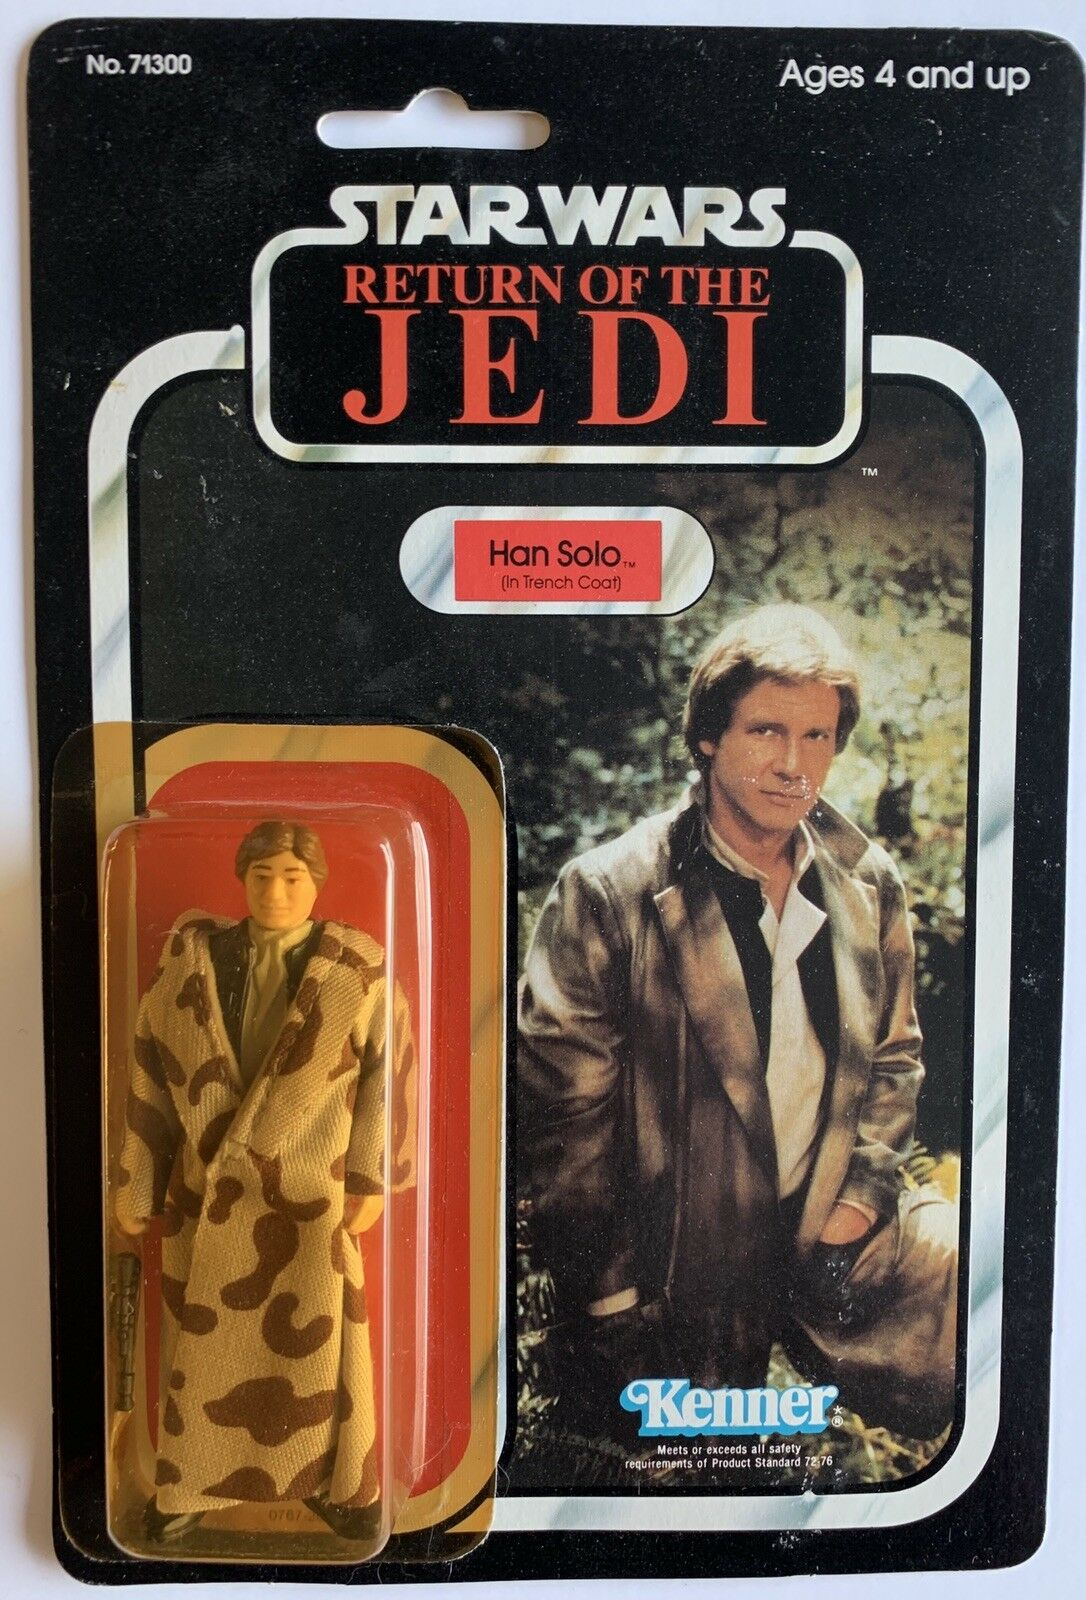 Star Wars - Return Of The Jedi - Han Solo (Trench Coat).